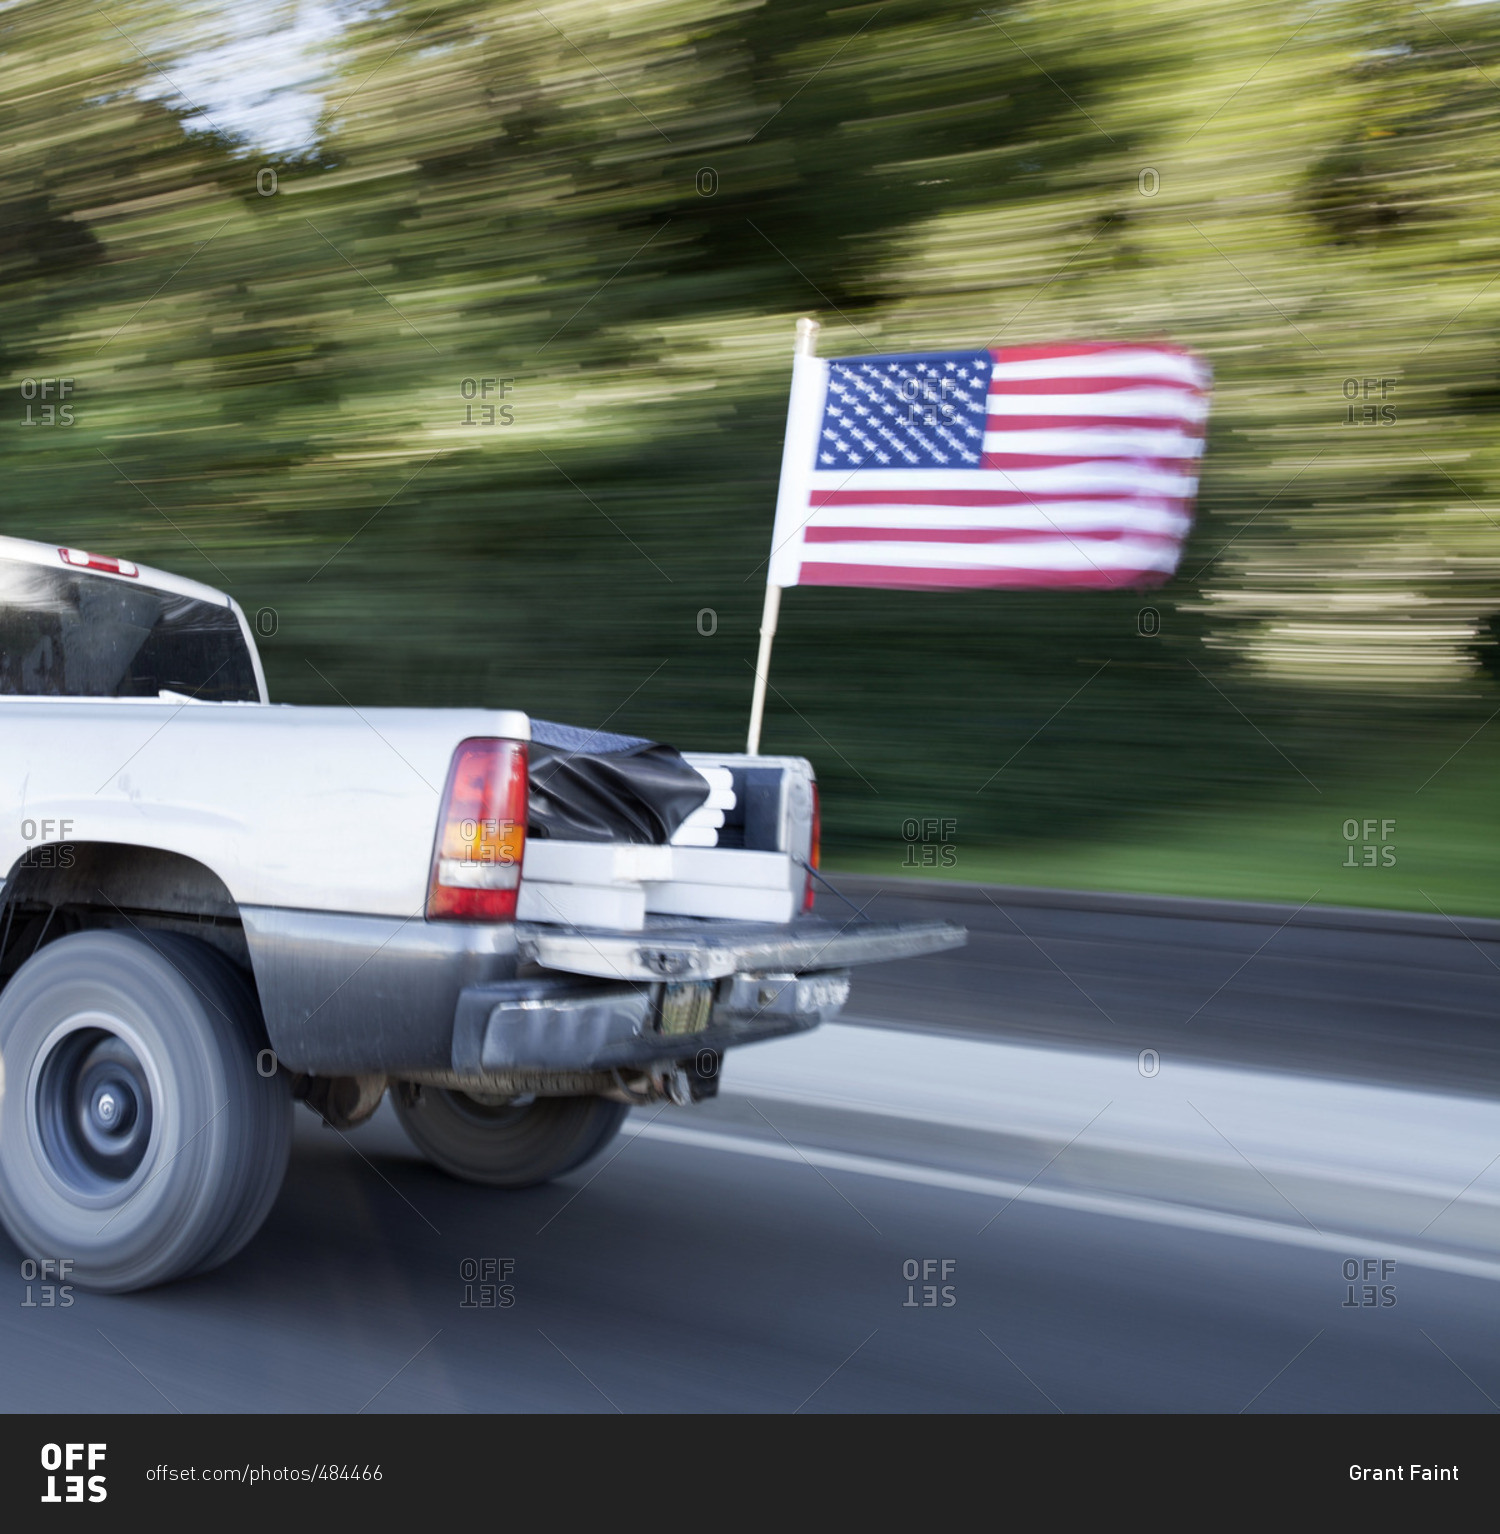 Speeding Pickup Truck With American Flag Stock Photo Offset